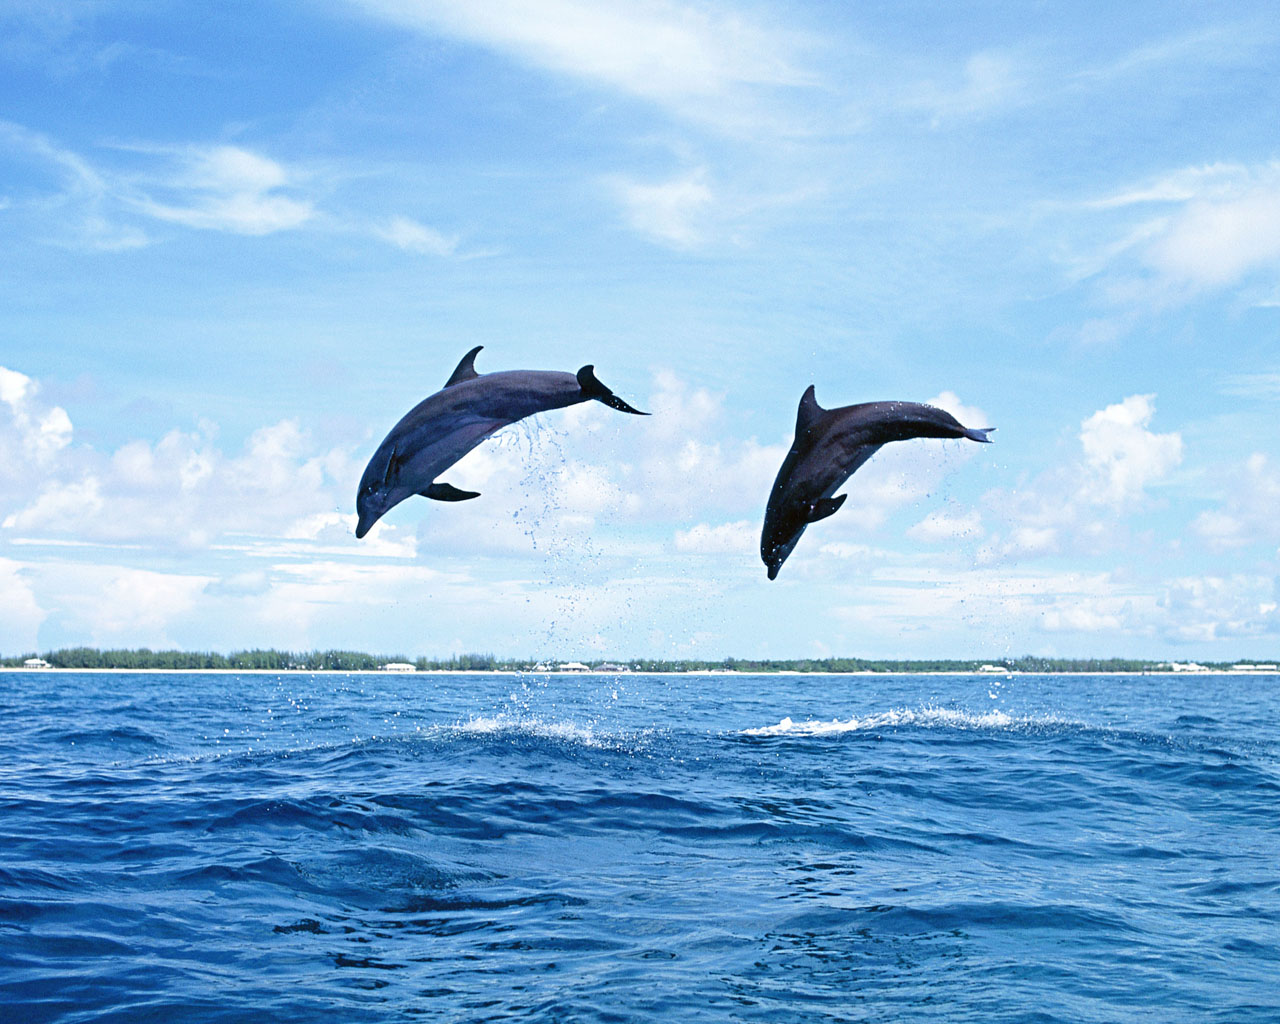 The best top desktop dolphin wallpapers hd dolphins wallpaper 17jpg 1280x1024